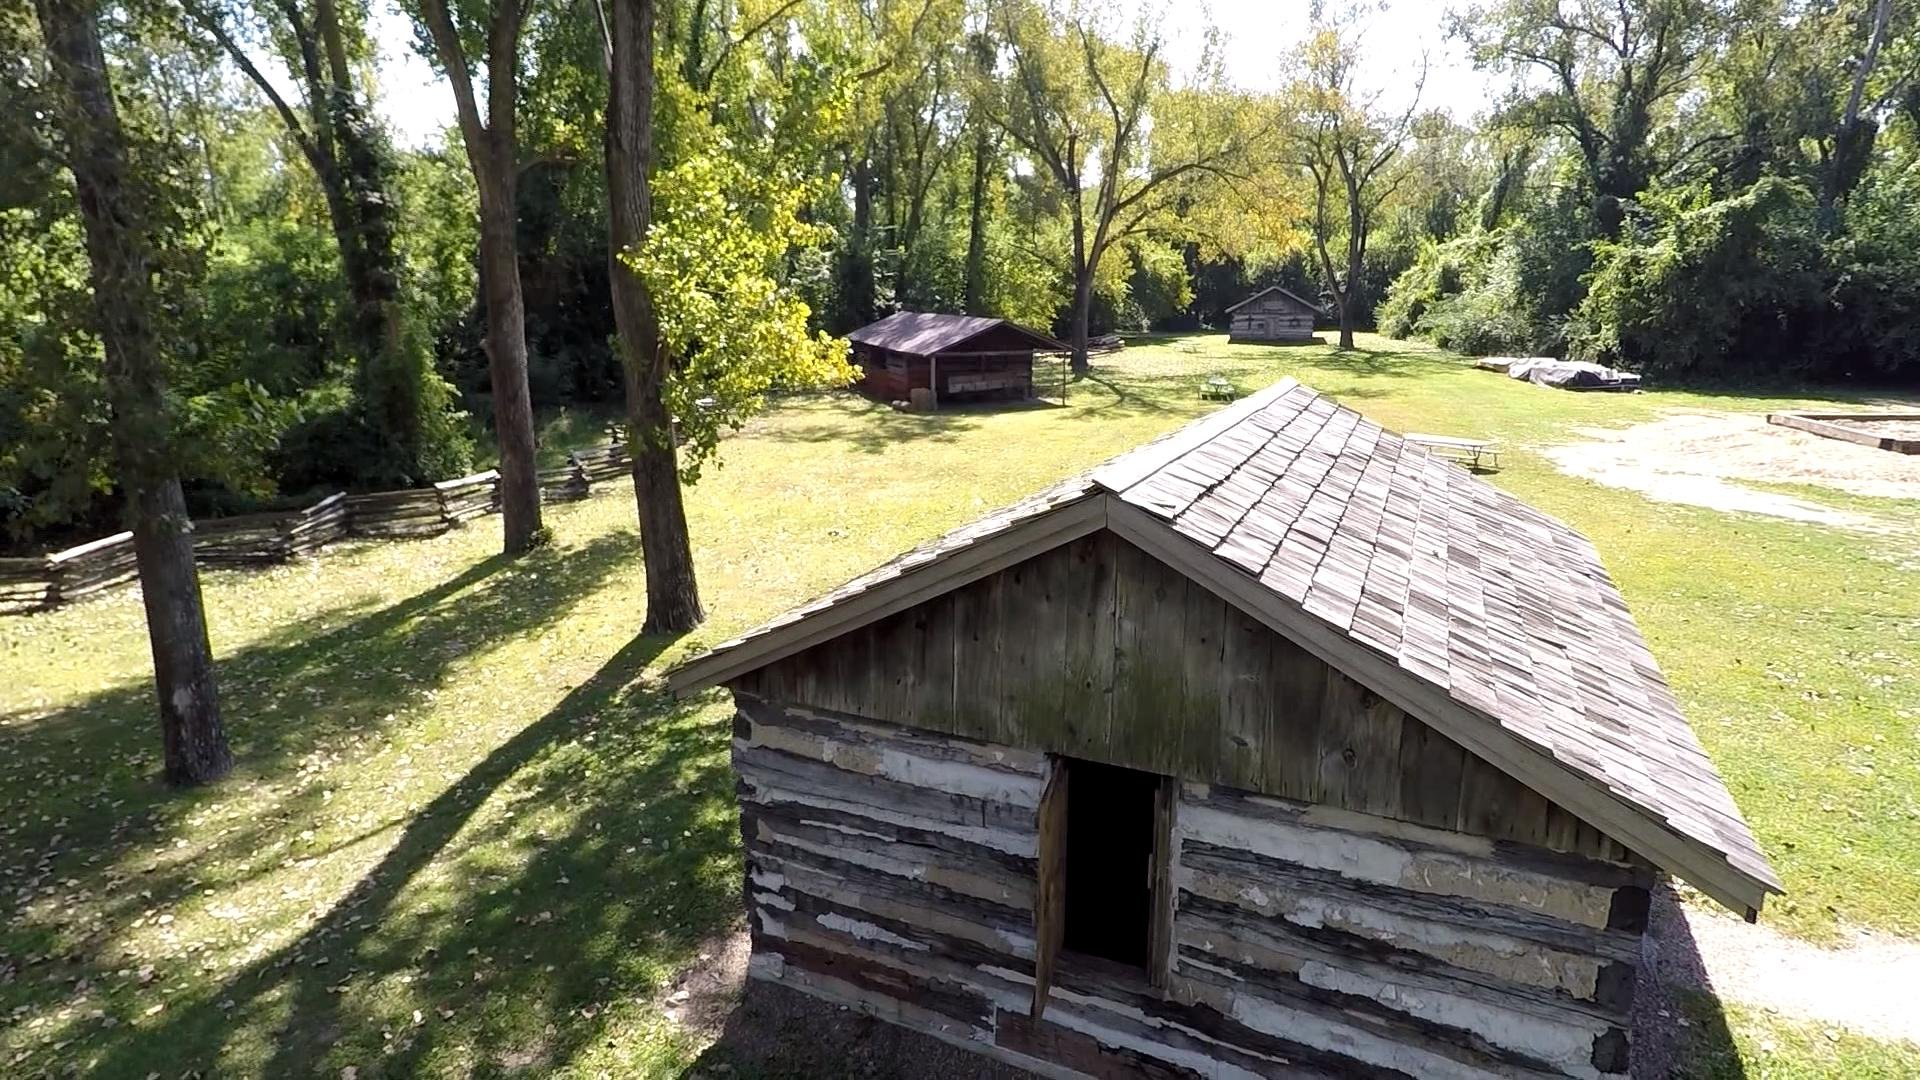 The WGEM News drone offers a view of the log cabin village on Quinsippi Island in Quincy.